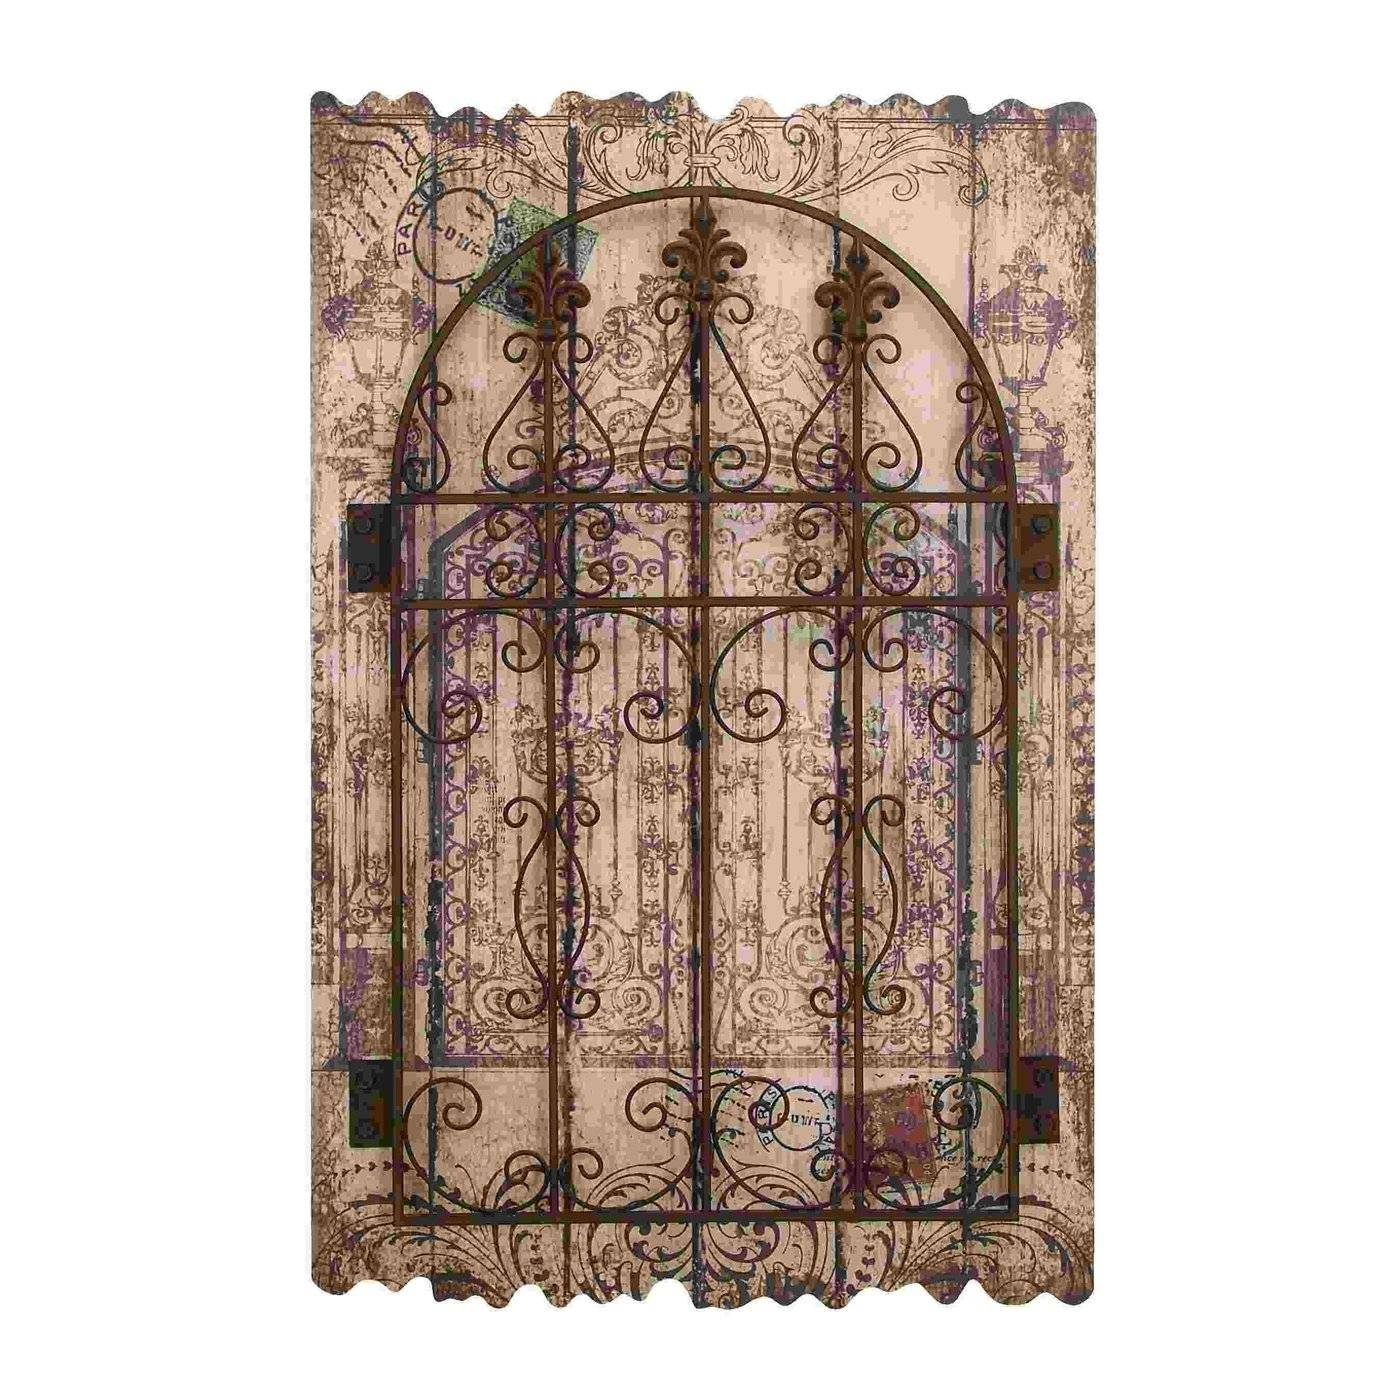 Wall Art Designs: Metal And Wood Wall Art Tuscan Carved Garden Pertaining To Most Up To Date Iron Gate Wall Art (View 12 of 25)